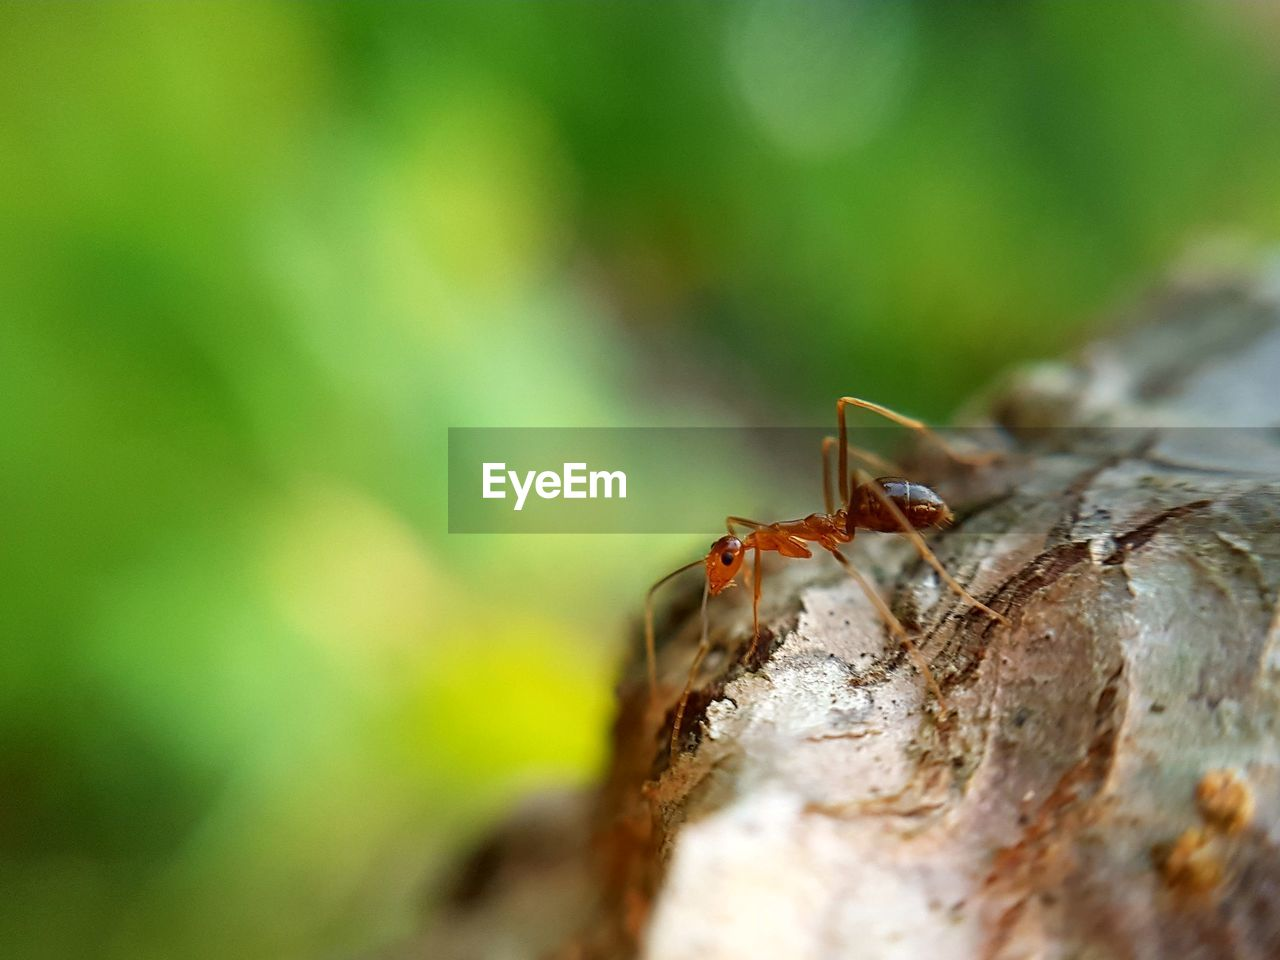 animals in the wild, close-up, animal wildlife, selective focus, animal, animal themes, invertebrate, one animal, insect, day, nature, no people, outdoors, arachnid, spider, arthropod, zoology, animal body part, focus on foreground, tree trunk, animal leg